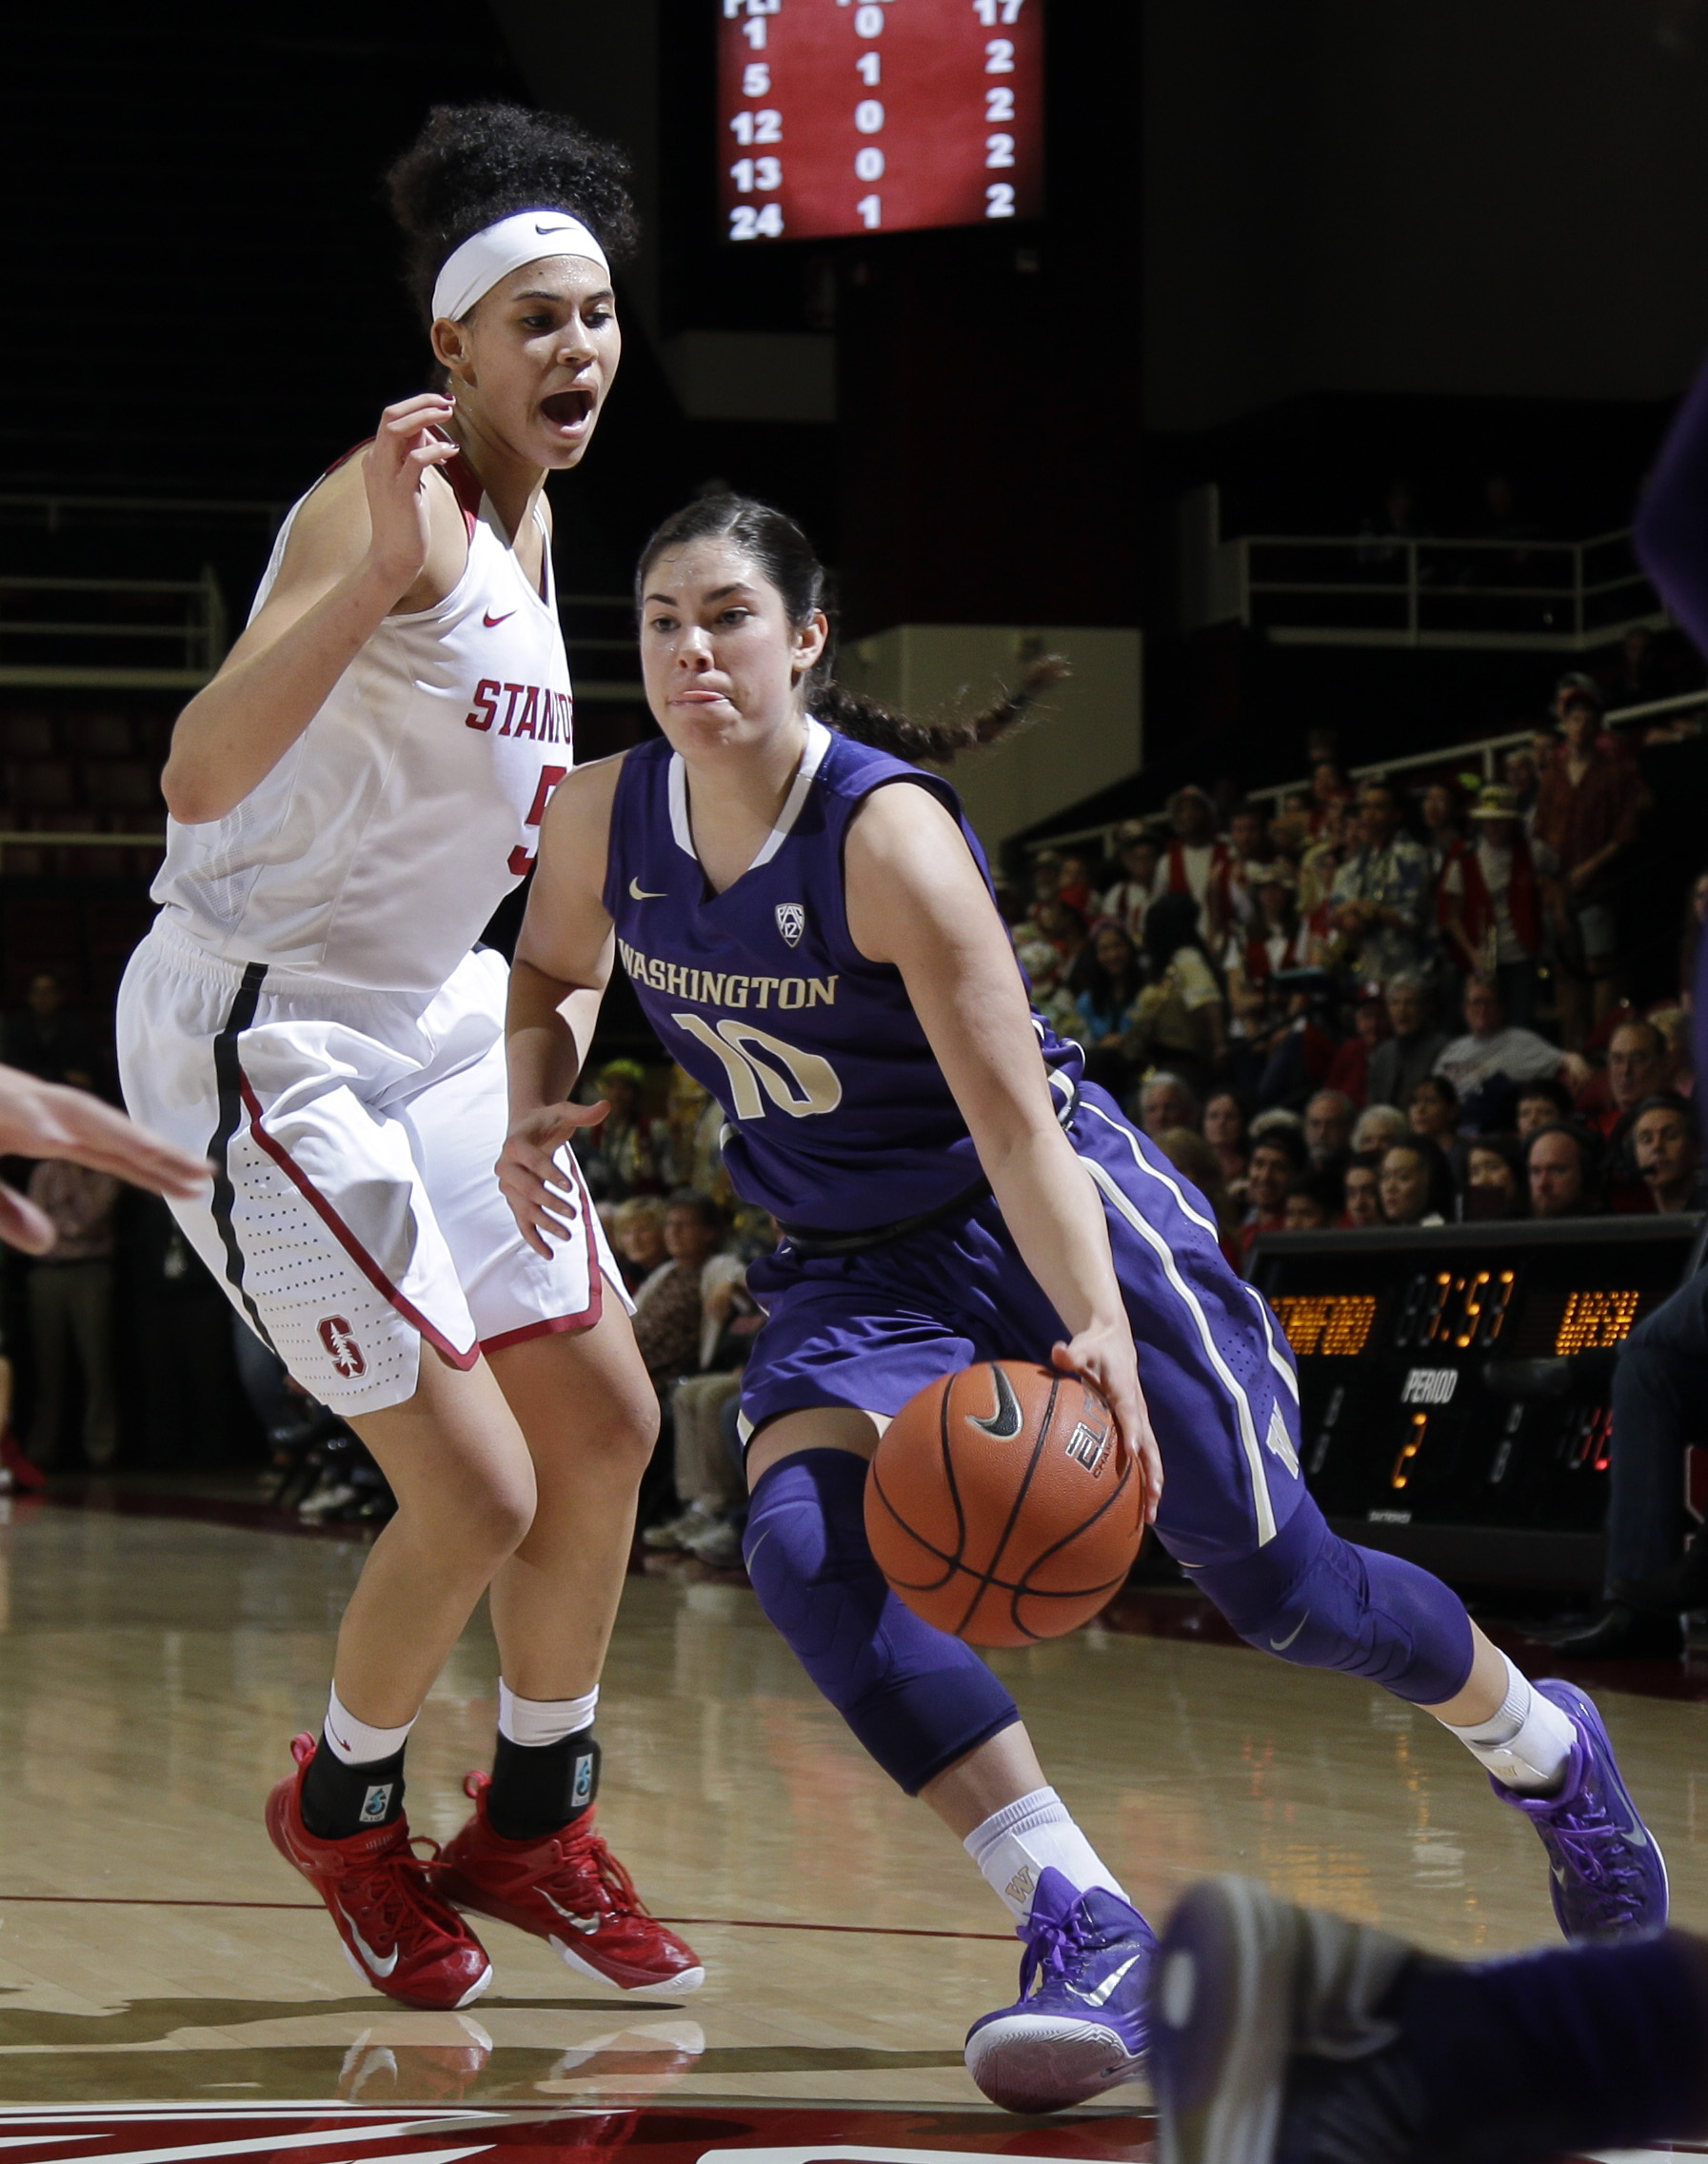 Washington guard Kelsey Plum (10) dribbles past Stanford forward Kaylee Johnson during the first half of an NCAA college basketball game Friday, Jan. 29, 2016, in Stanford, Calif. (AP Photo/Marcio Jose Sanchez)